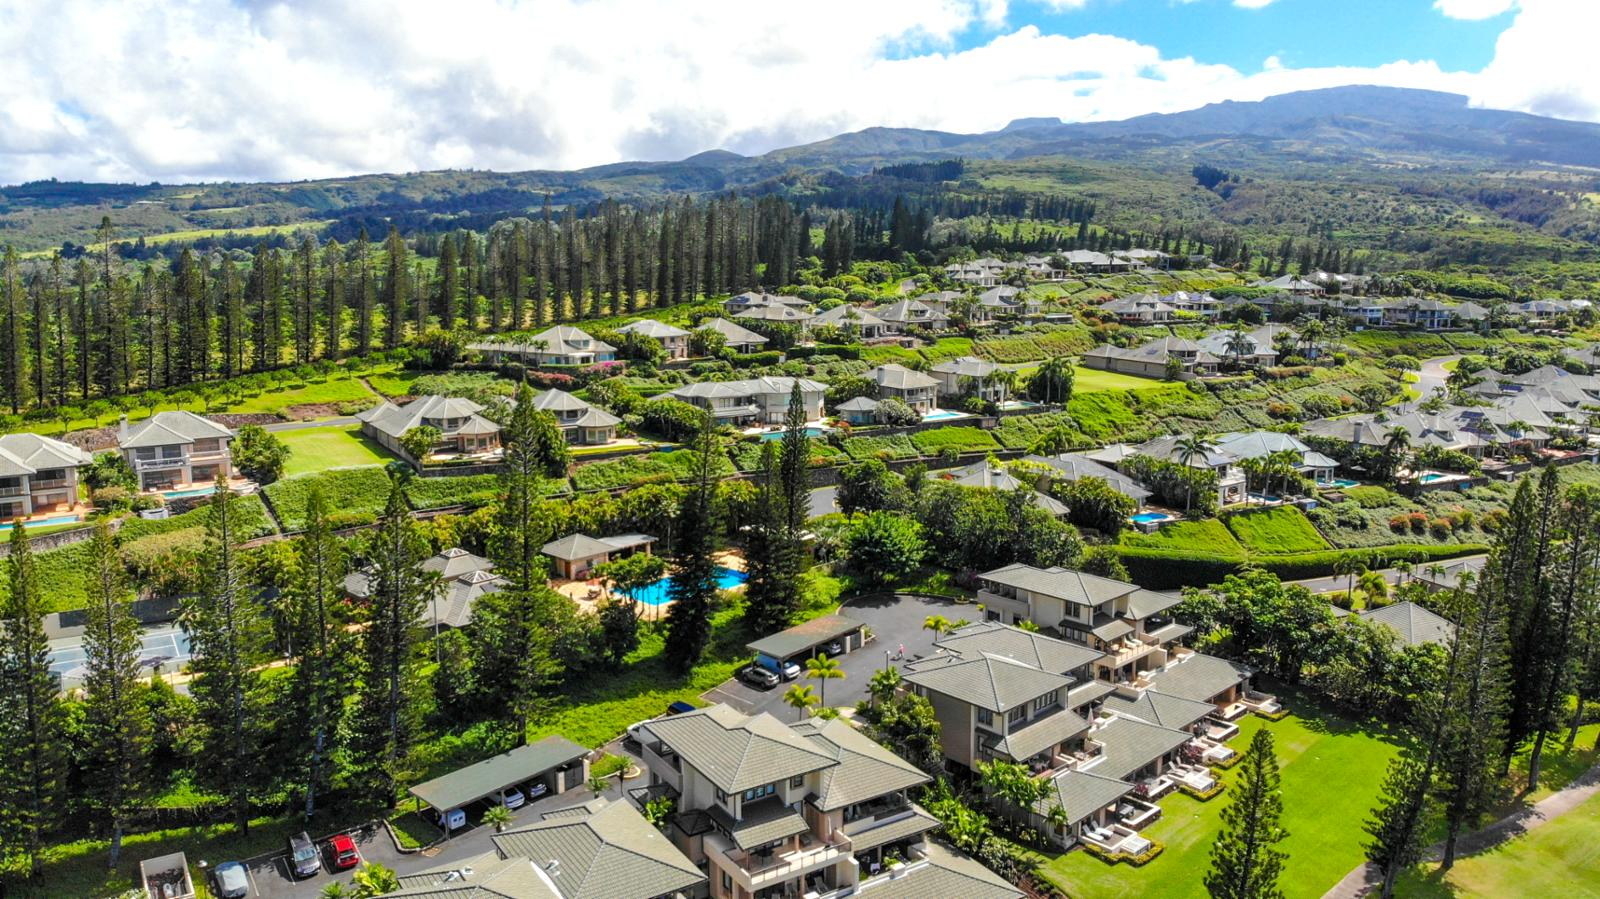 Welcome to the world famous Kapalua Resort Golf Villas! Aerial view